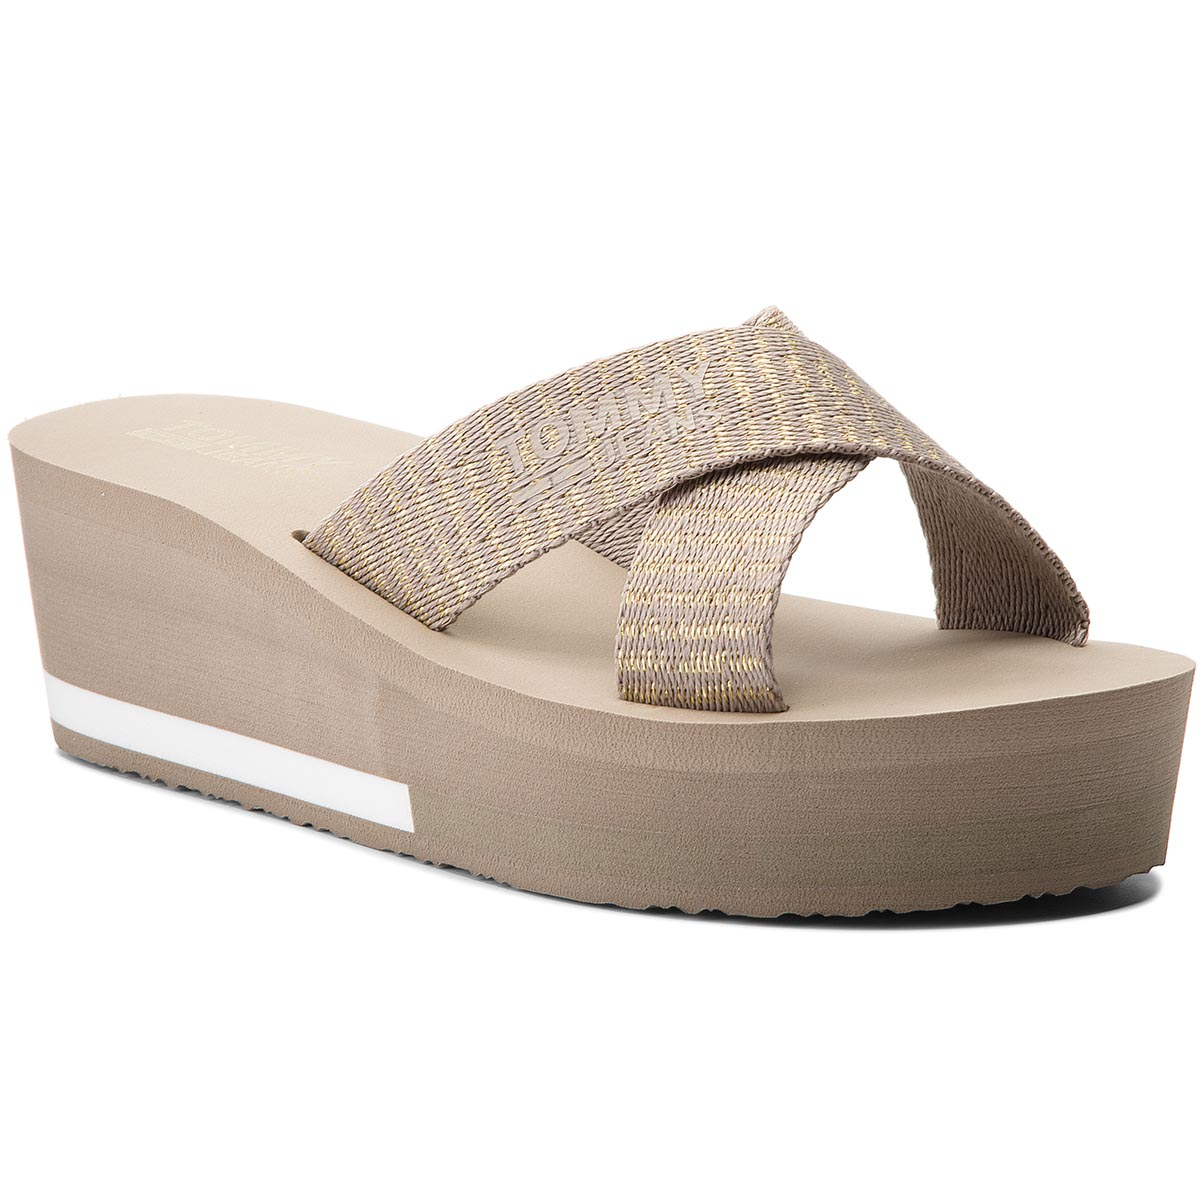 Klapki TOMMY JEANS - Sporty Mid Beach Sandal EN0EN00068 Light Gold 708